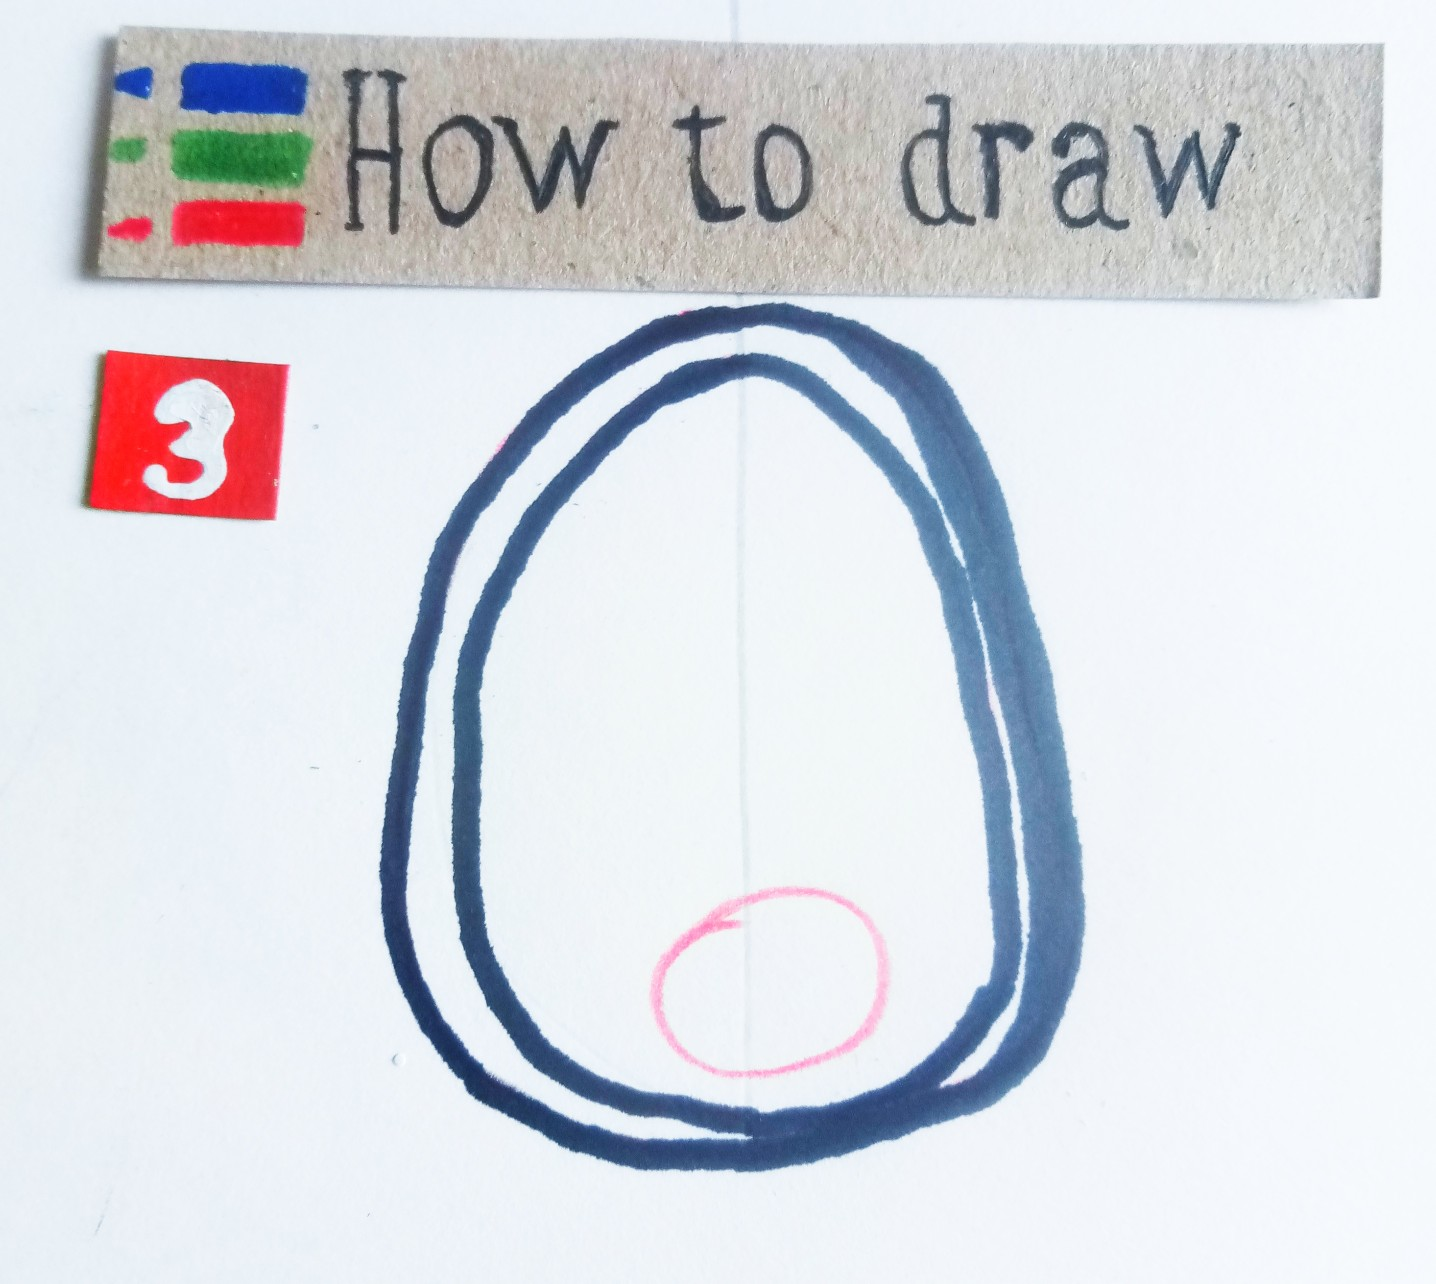 How to draw an avocado - step by step tutorial